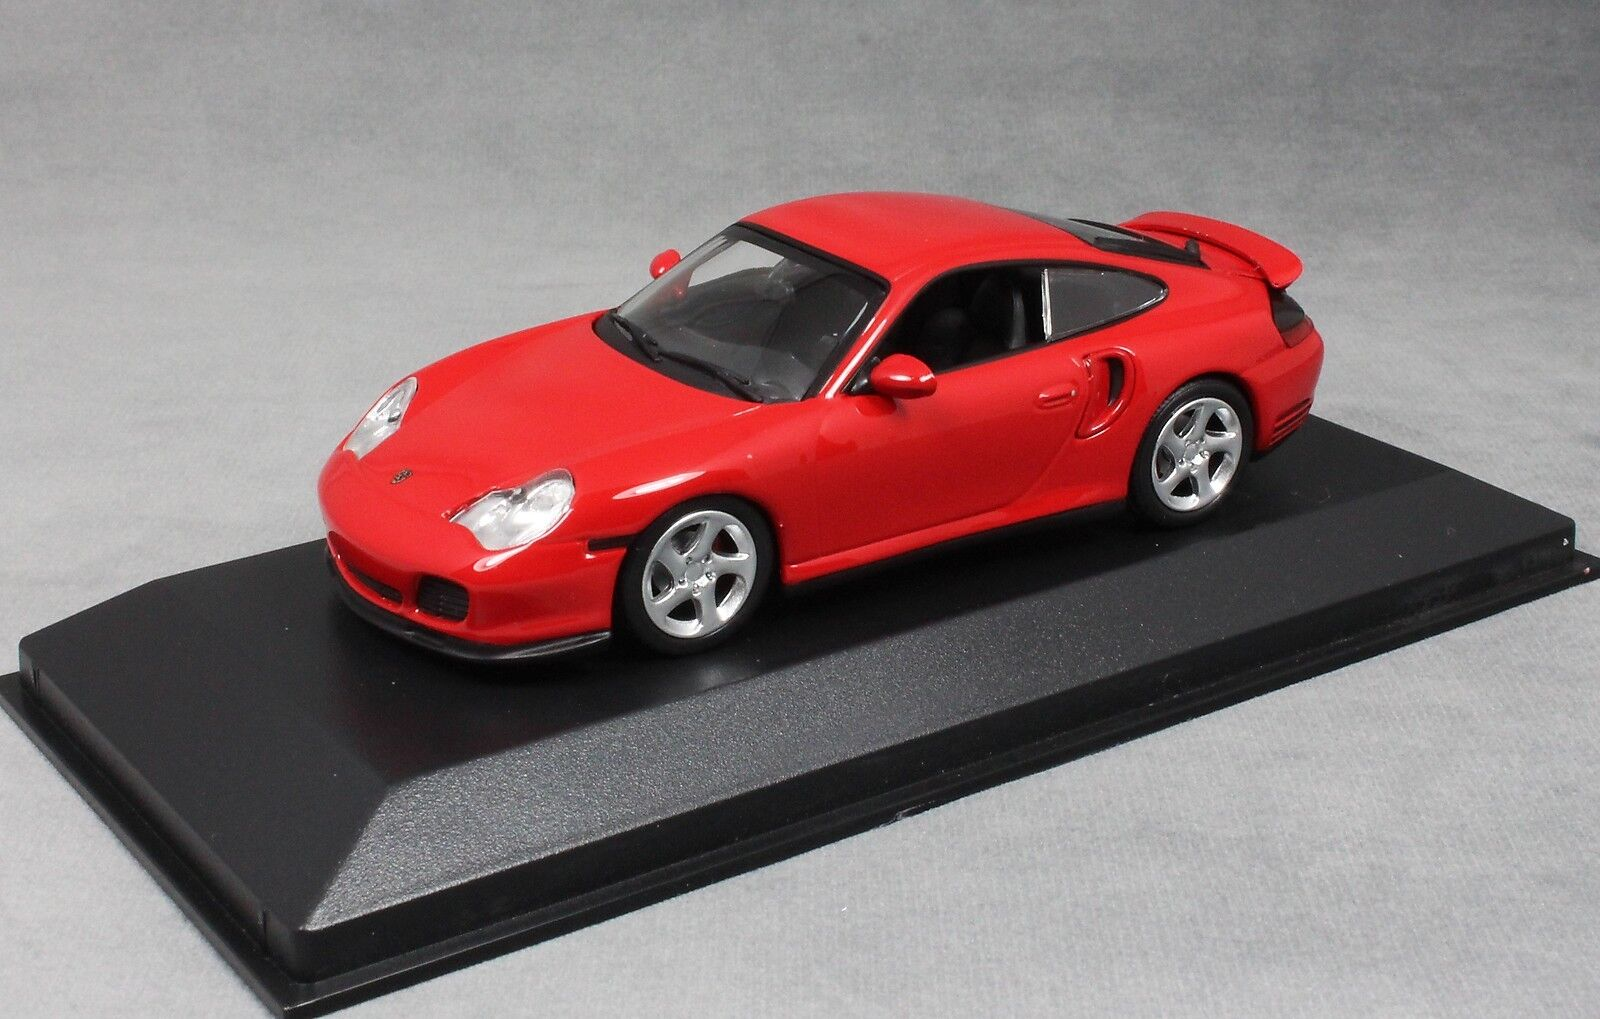 Minichamps Maxichamps Porsche 911 996 Turbo in Red 1999 940069300 1 43 NEW